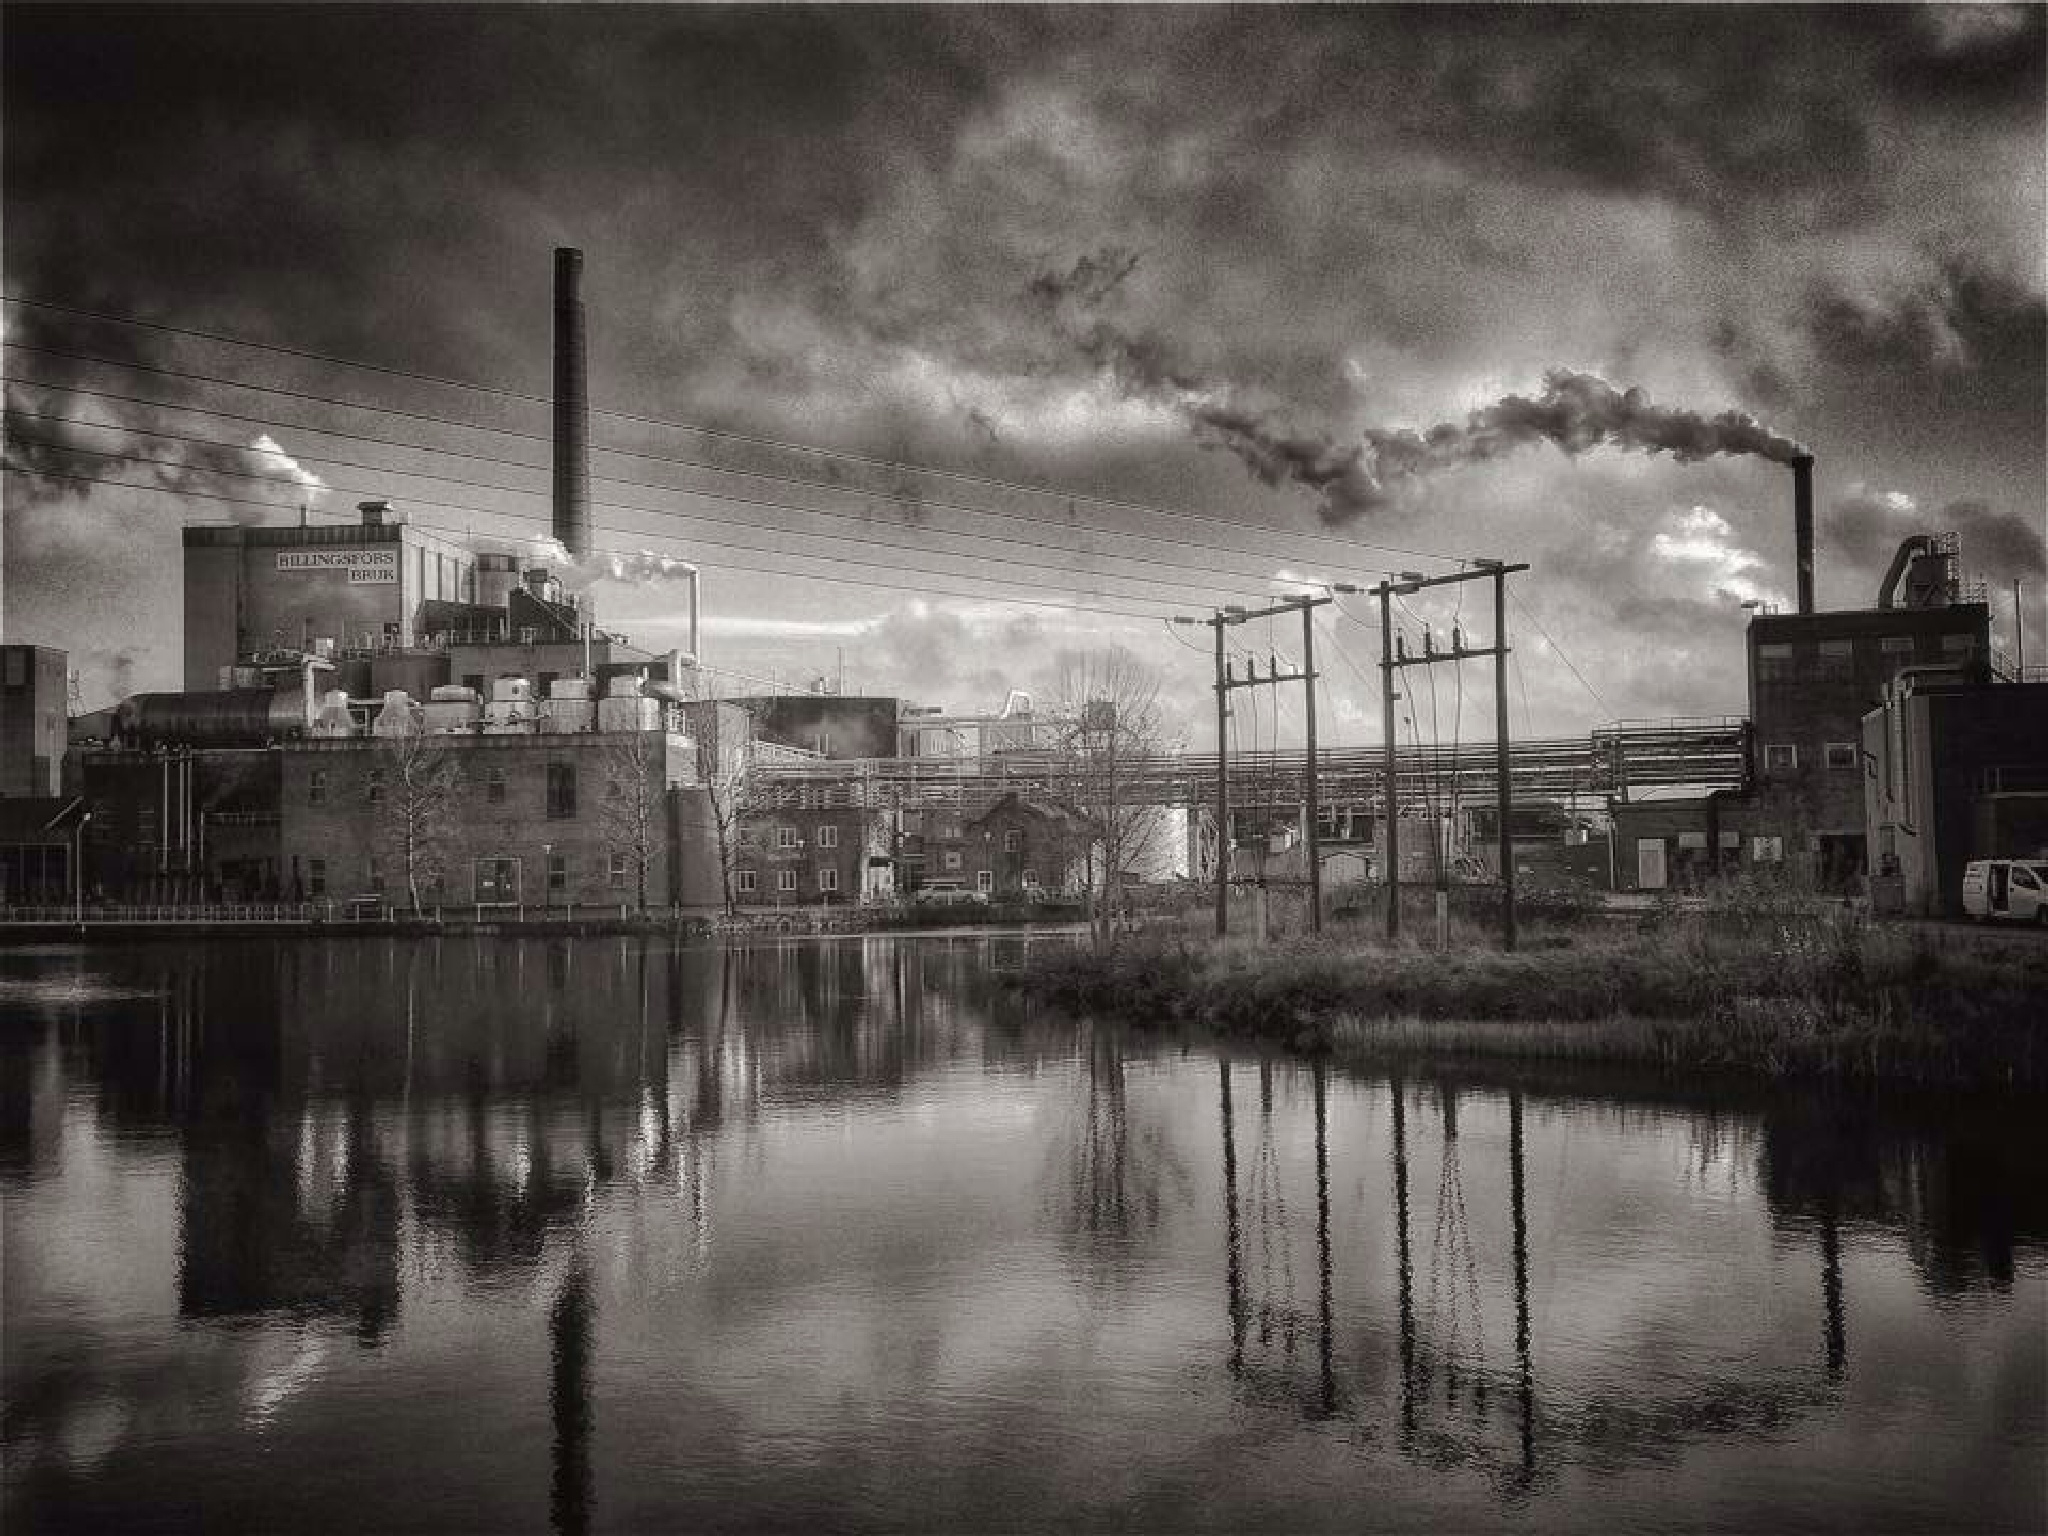 Paper factory  by J_Salmeron